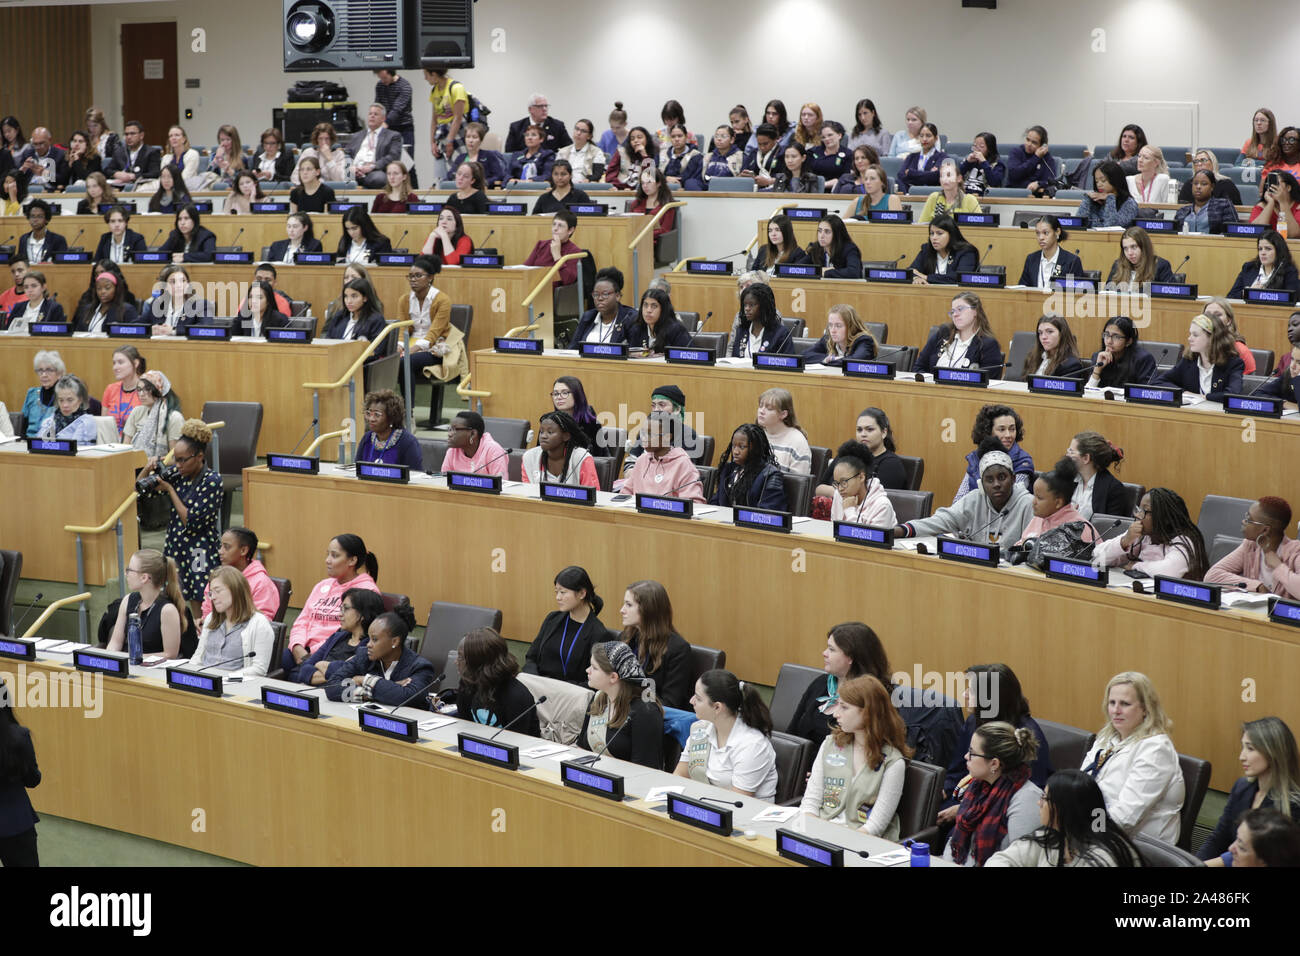 """New York, NY, USA. 11th Oct, 2019. United Nations, New York, USA, October 11, 2019 - 7th Annual """"Girls Speak Out"""""""" in celebration of the International Day of the Girl Child today at the UN Headquarters in New York.Photo: Luiz Rampelotto/EuropaNewswire.PHOTO CREDIT MANDATORY. Credit: Luiz Rampelotto/ZUMA Wire/Alamy Live News Stock Photo"""